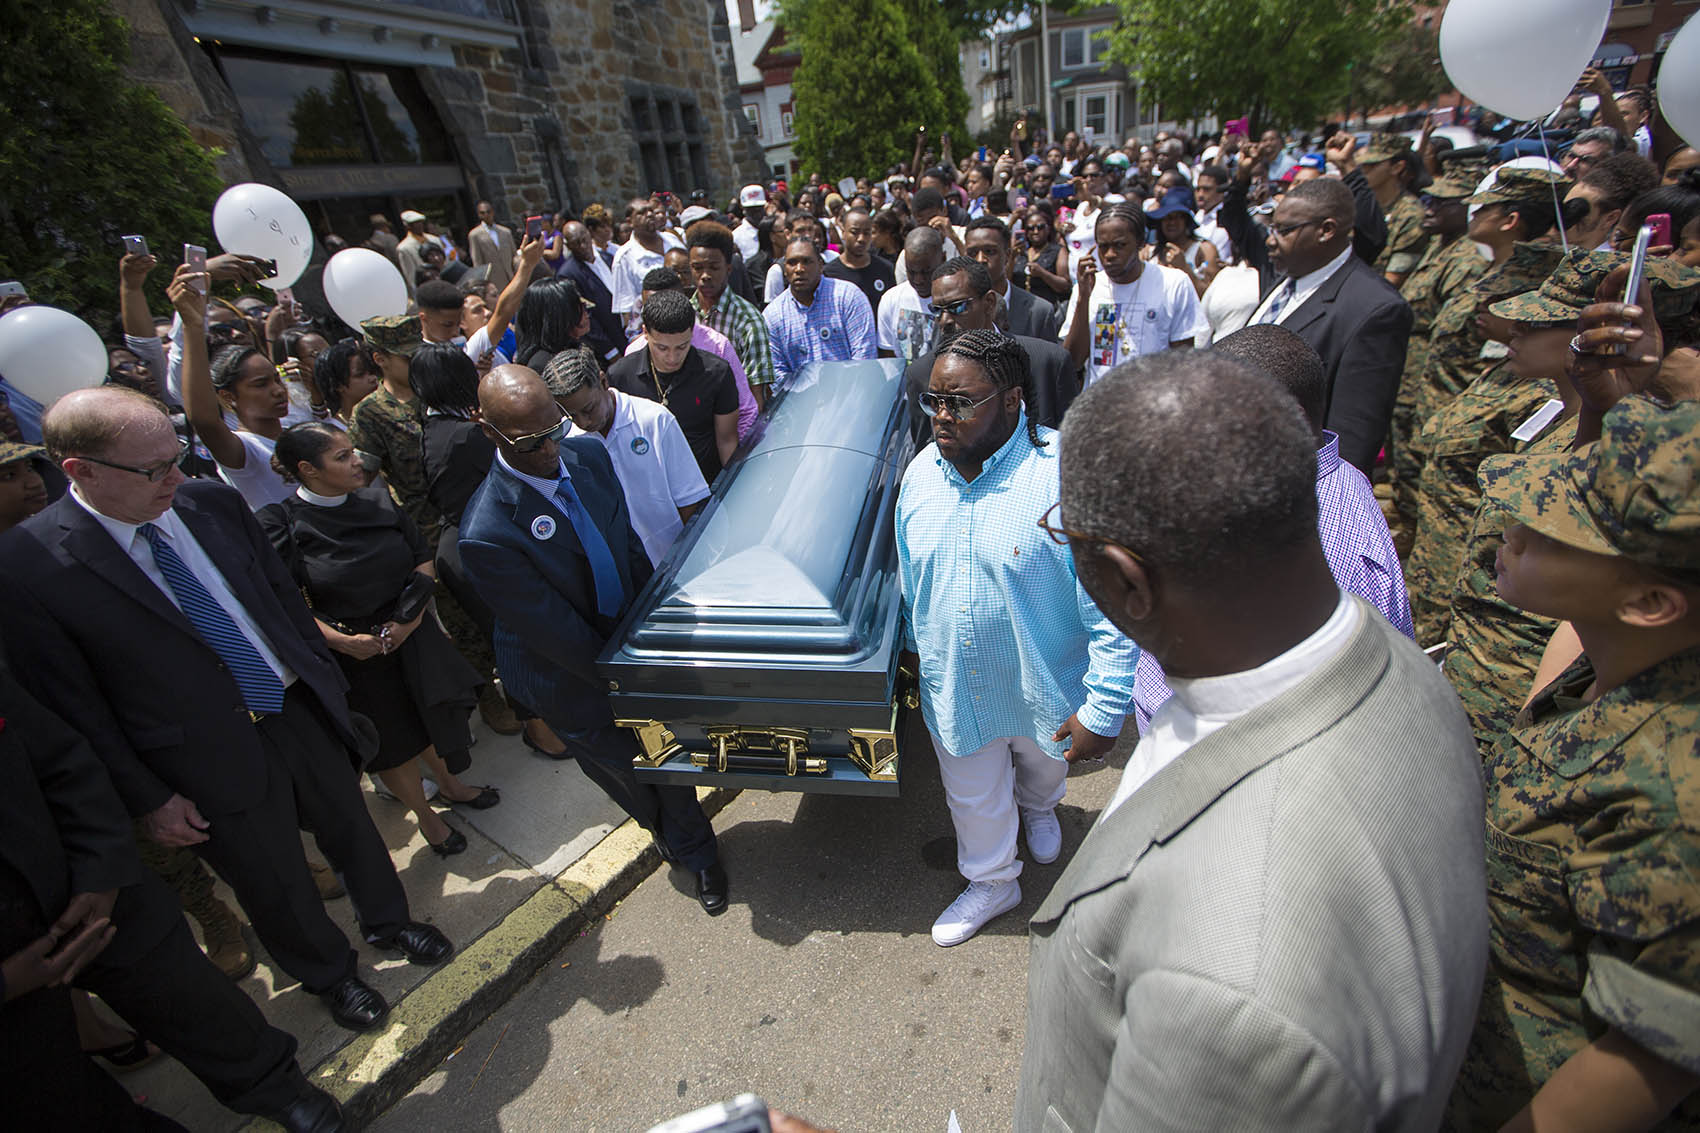 Pallbearers carry the casket of Raekwon Brown out of the Charles Street AME Church. (Jesse Costa/WBUR)